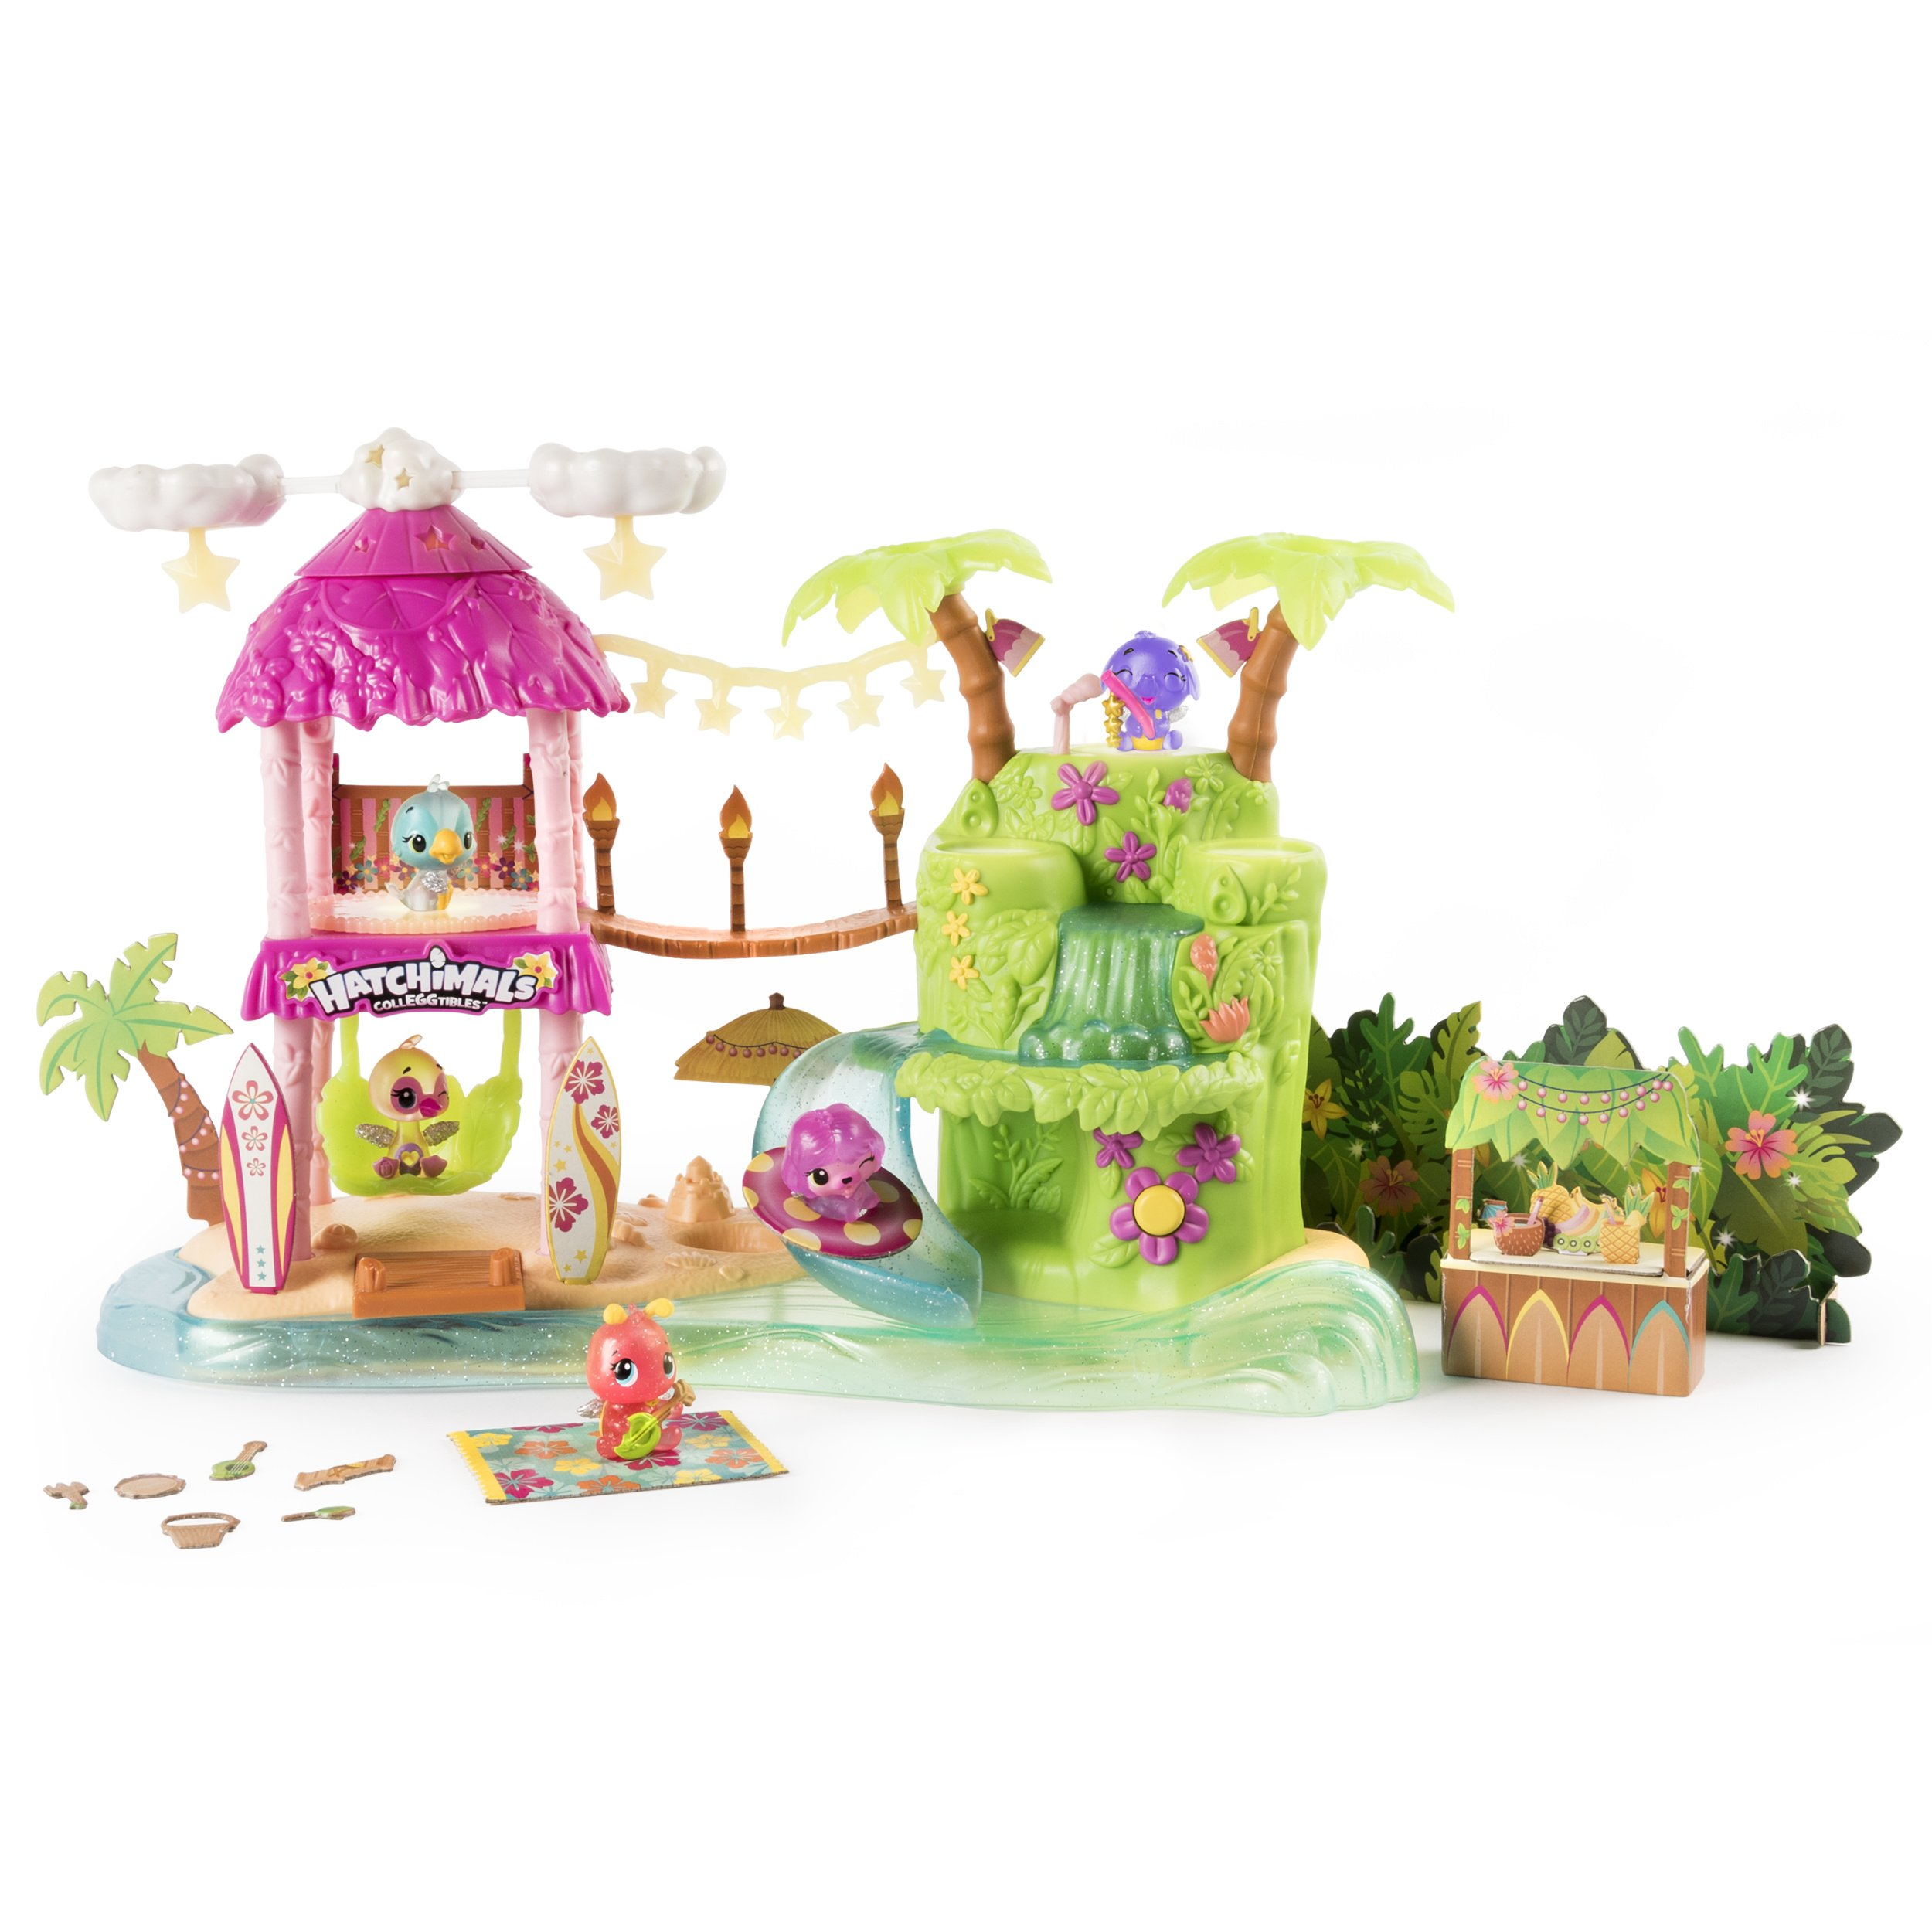 Hatchimals CollEGGtibles Tropical Party Playset with Lights, Sounds and Exclusive Season 4 CollEGGtibles for Ages 5 and Up